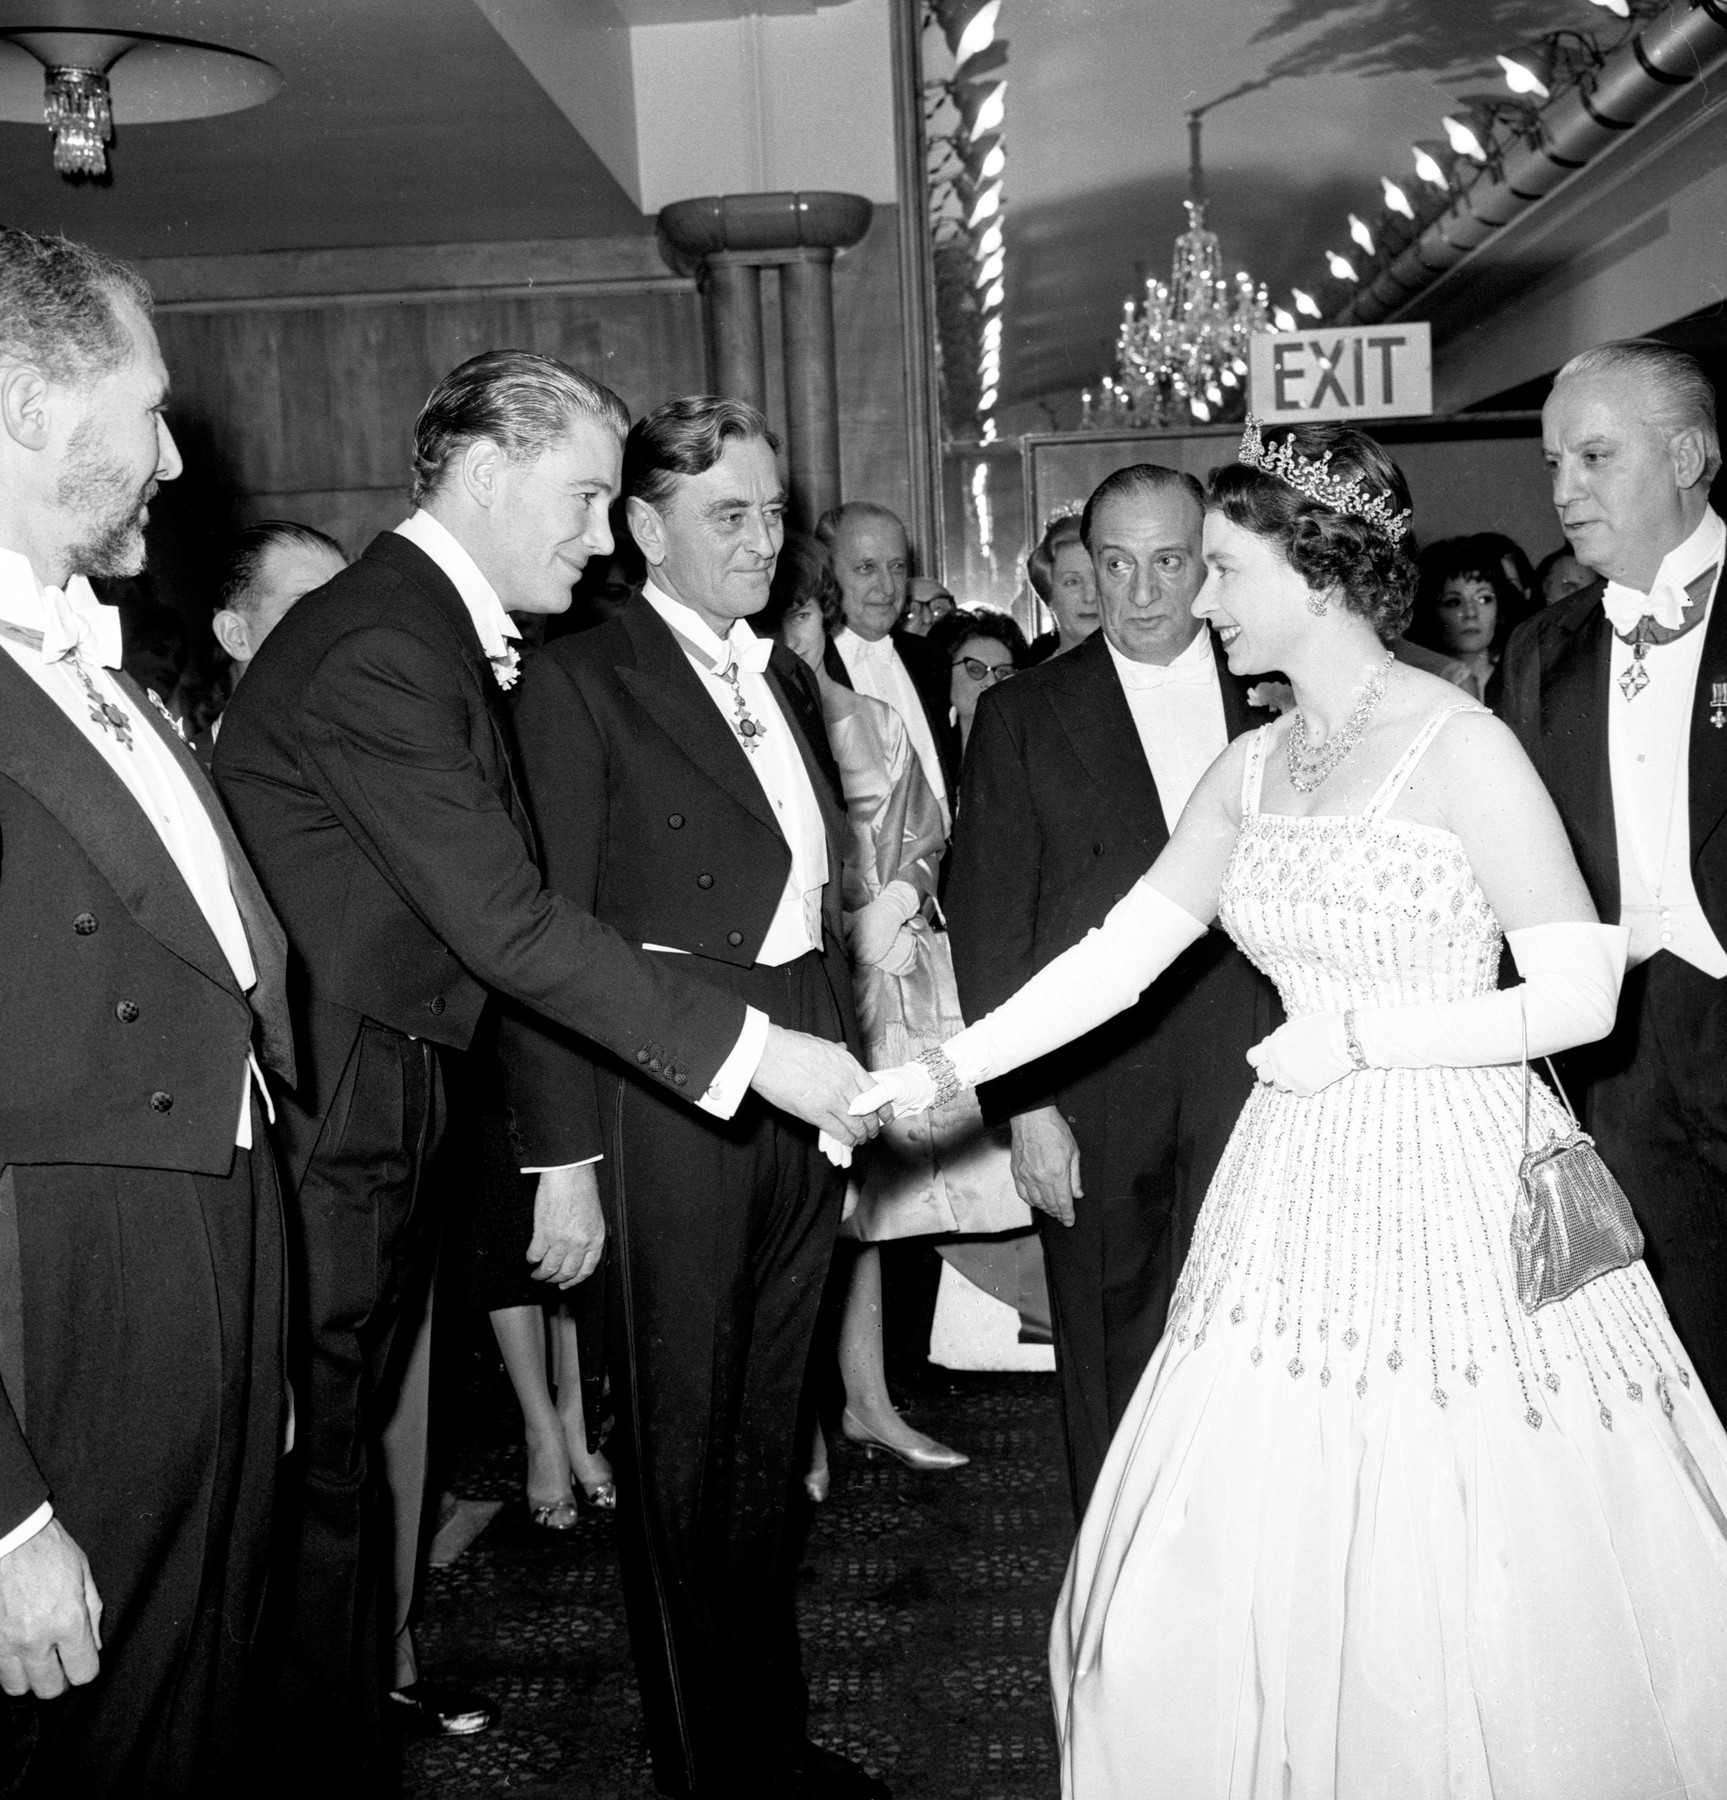 File photo dated 10/12/62 of Queen Elizabeth II arriving at the Odeon, Leicester Square, London for the world charity premiere of the film 'Lawrence of Arabia'. The Queen is wearing the same Peau De Soie taffeta dress by Norman Hartnell that was worn by Princess Beatrice at her wedding to Edoardo Mapelli Mozzi on Friday.,Image: 544663457, License: Rights-managed, Restrictions: FILE PHOTO, Model Release: no, Credit line: PA / PA Images / Profimedia